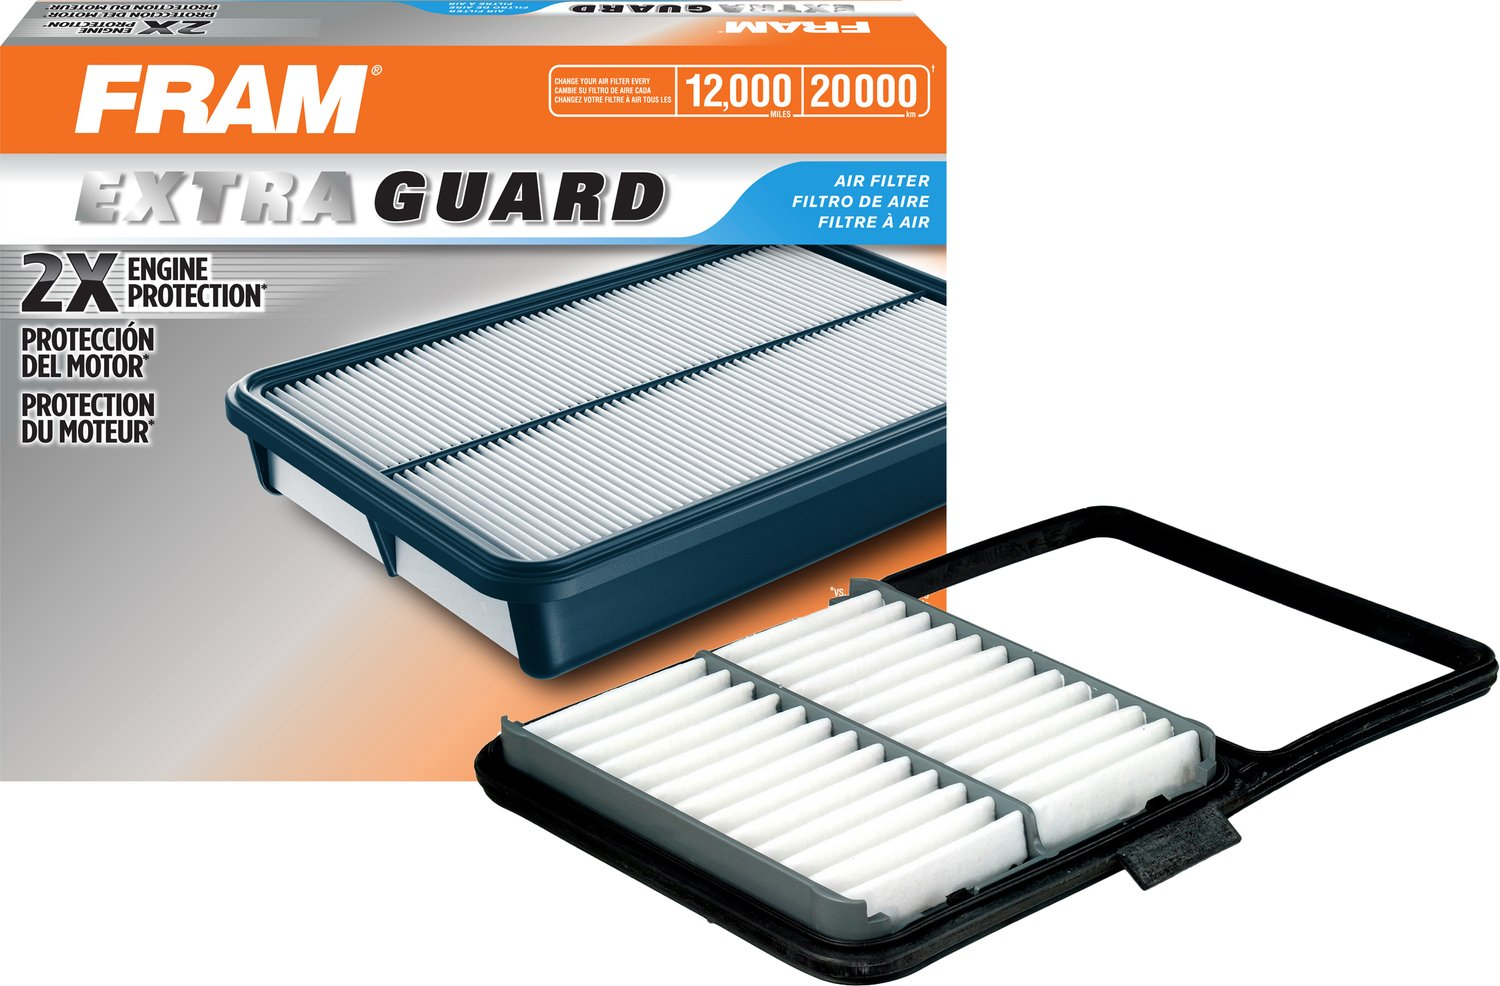 FRAM CA10159 Extra Guard Rigid Panel Air Filter